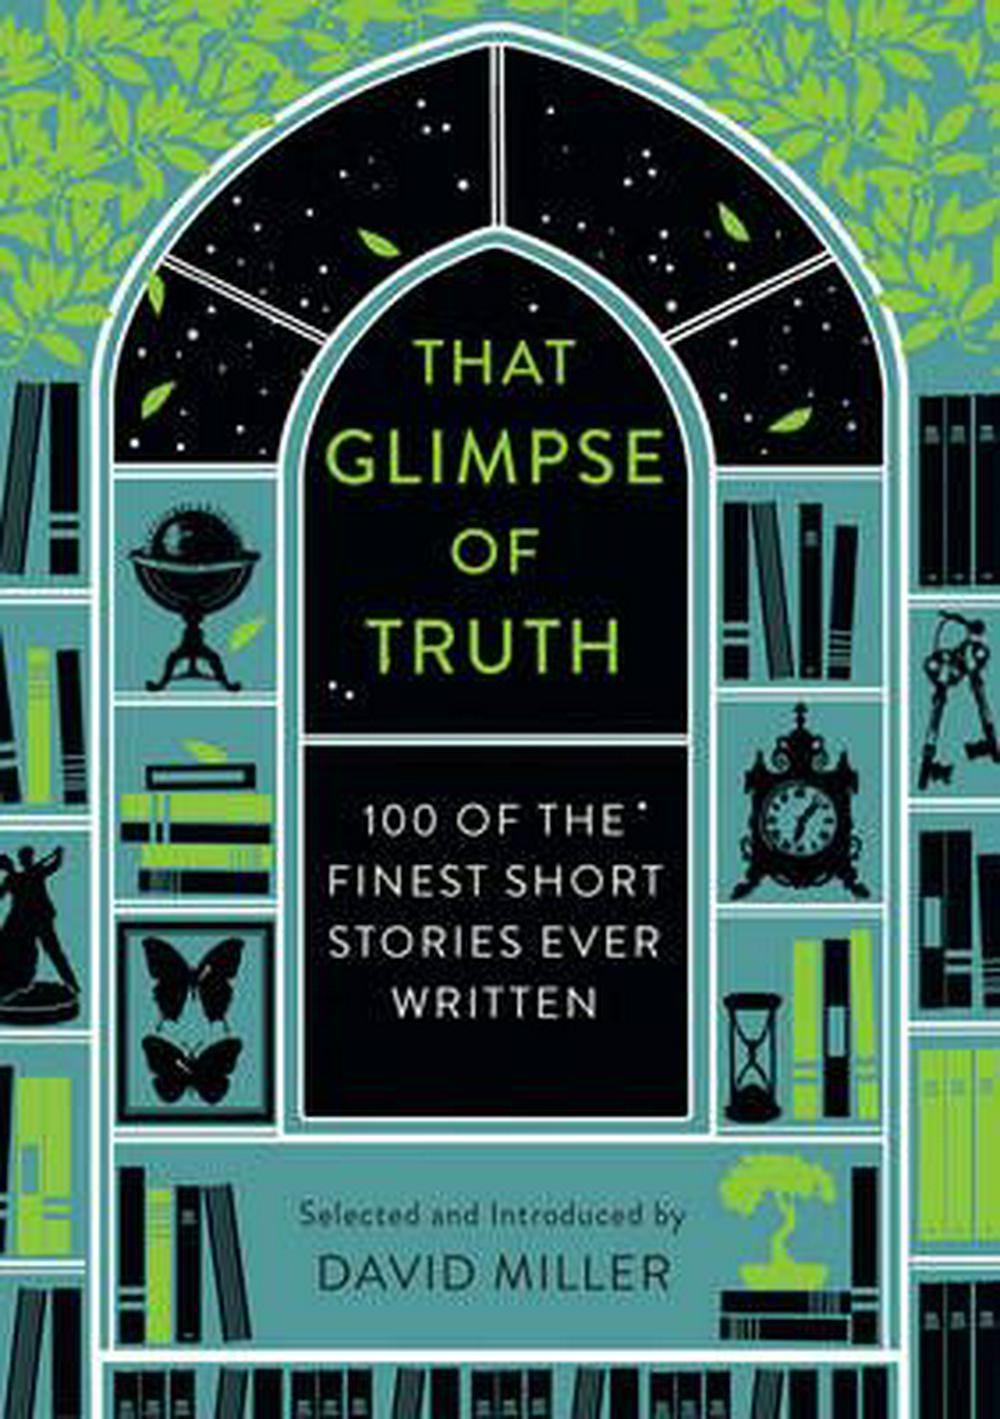 That Glimpse Of Truth: The 100 Finest Short Stories Ever Written by David Miller, ISBN: 9781784080044